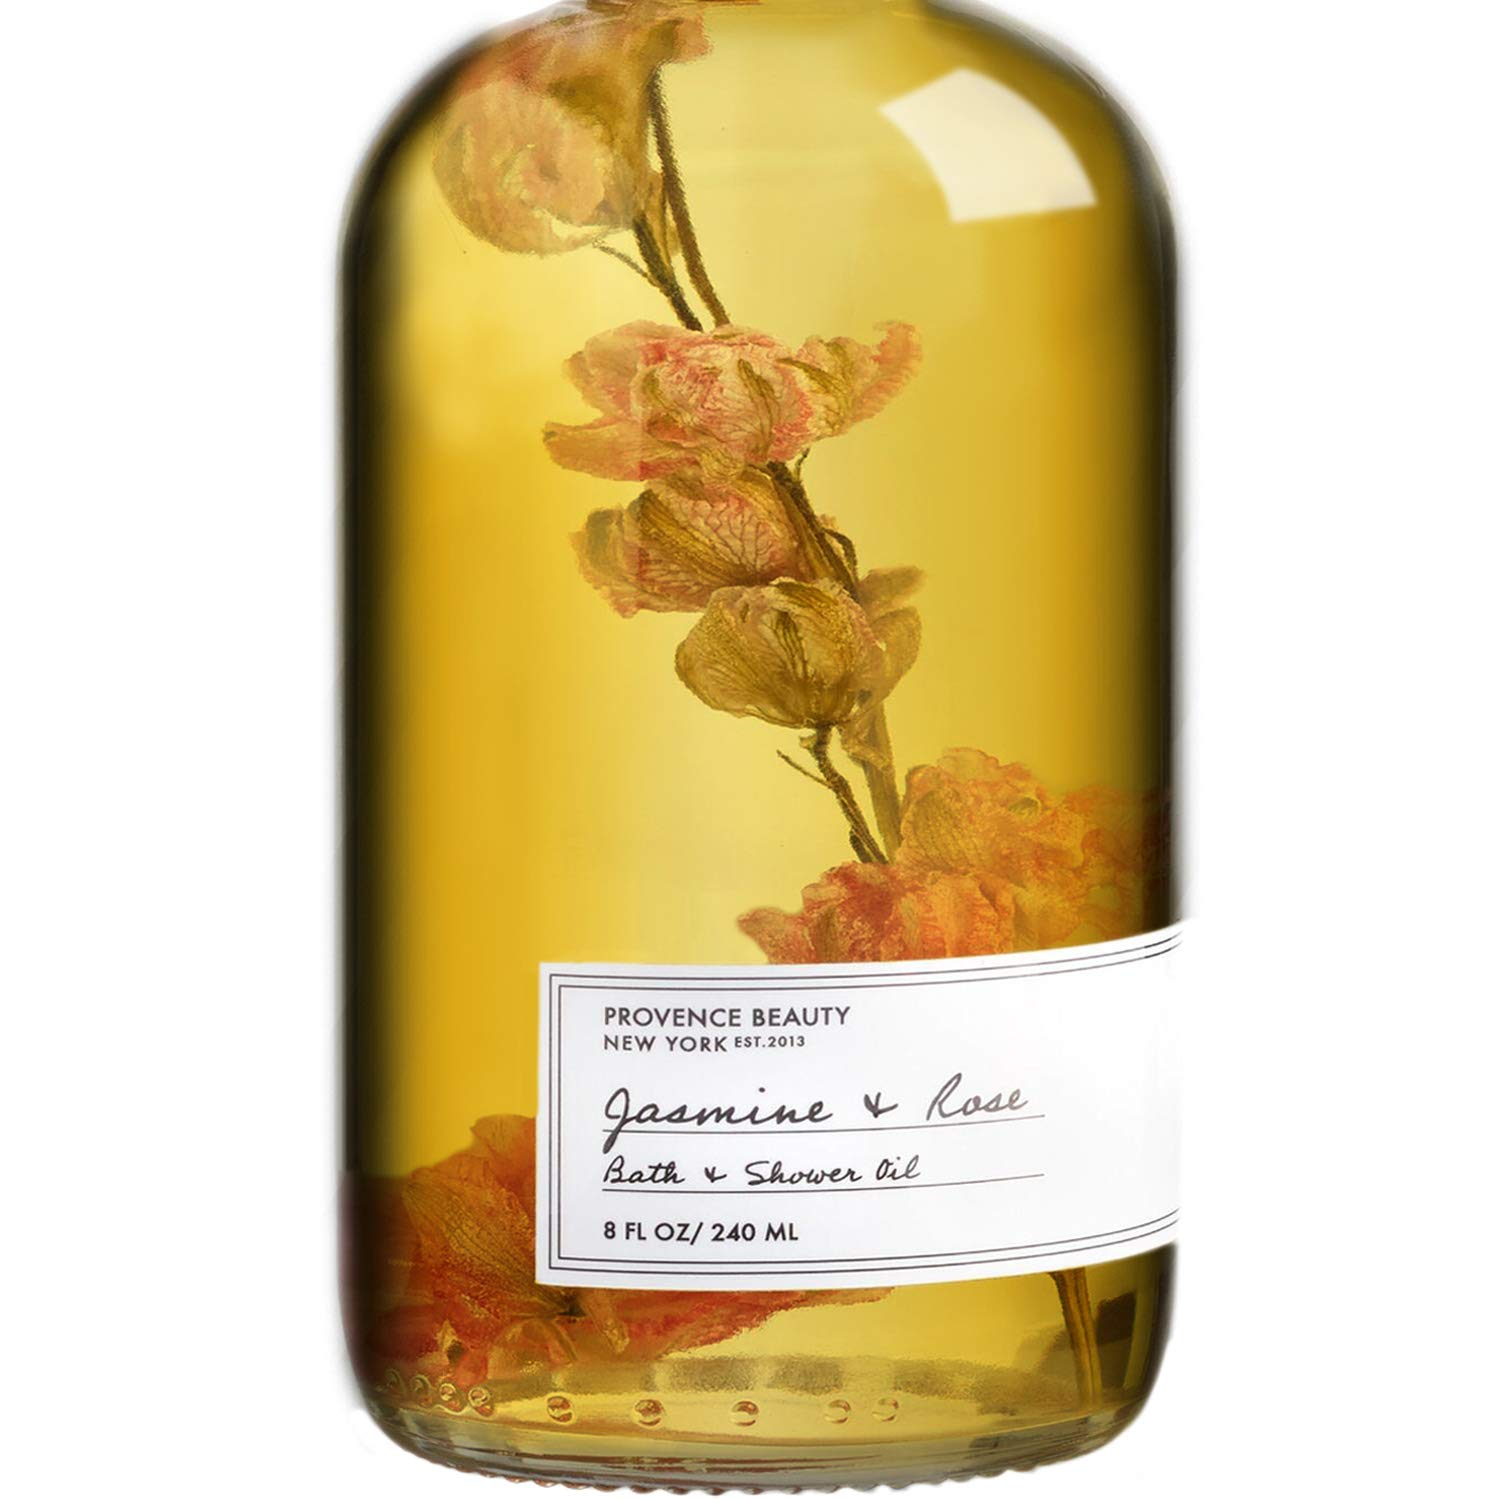 Provence Beauty Bath and Shower Oil - Jasminie and Rose - 8 Fl Oz - Cleansing and Softening Jojoba, Almond and Vitamin E Oil - Lathering Massage in the Shower